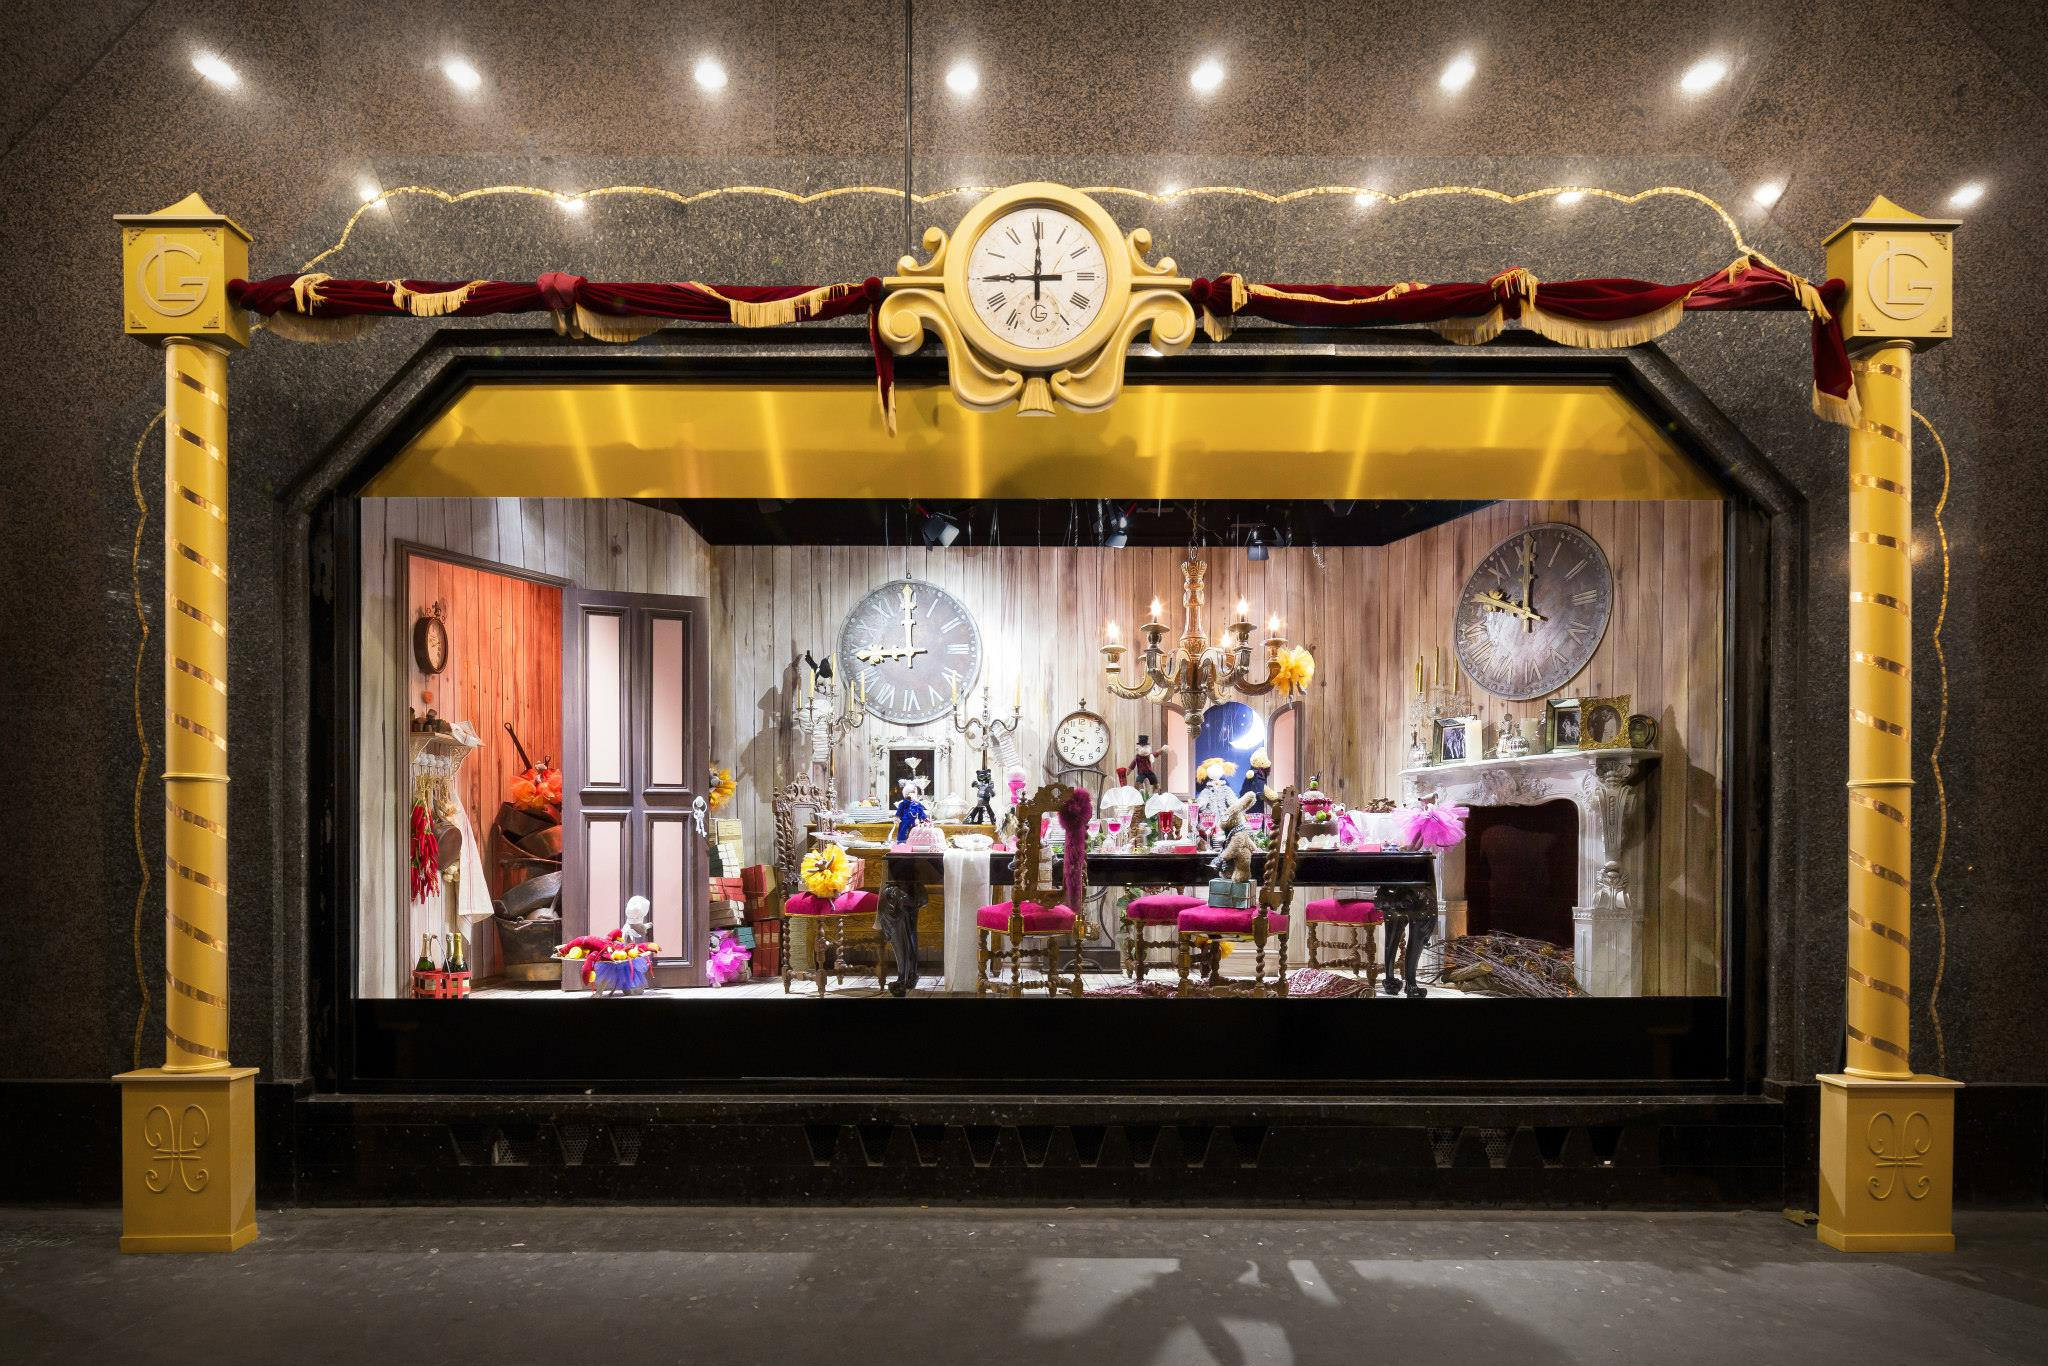 Galeries lafayette christmas window display 2013 best window displays - Vitrines galeries lafayette 2016 ...